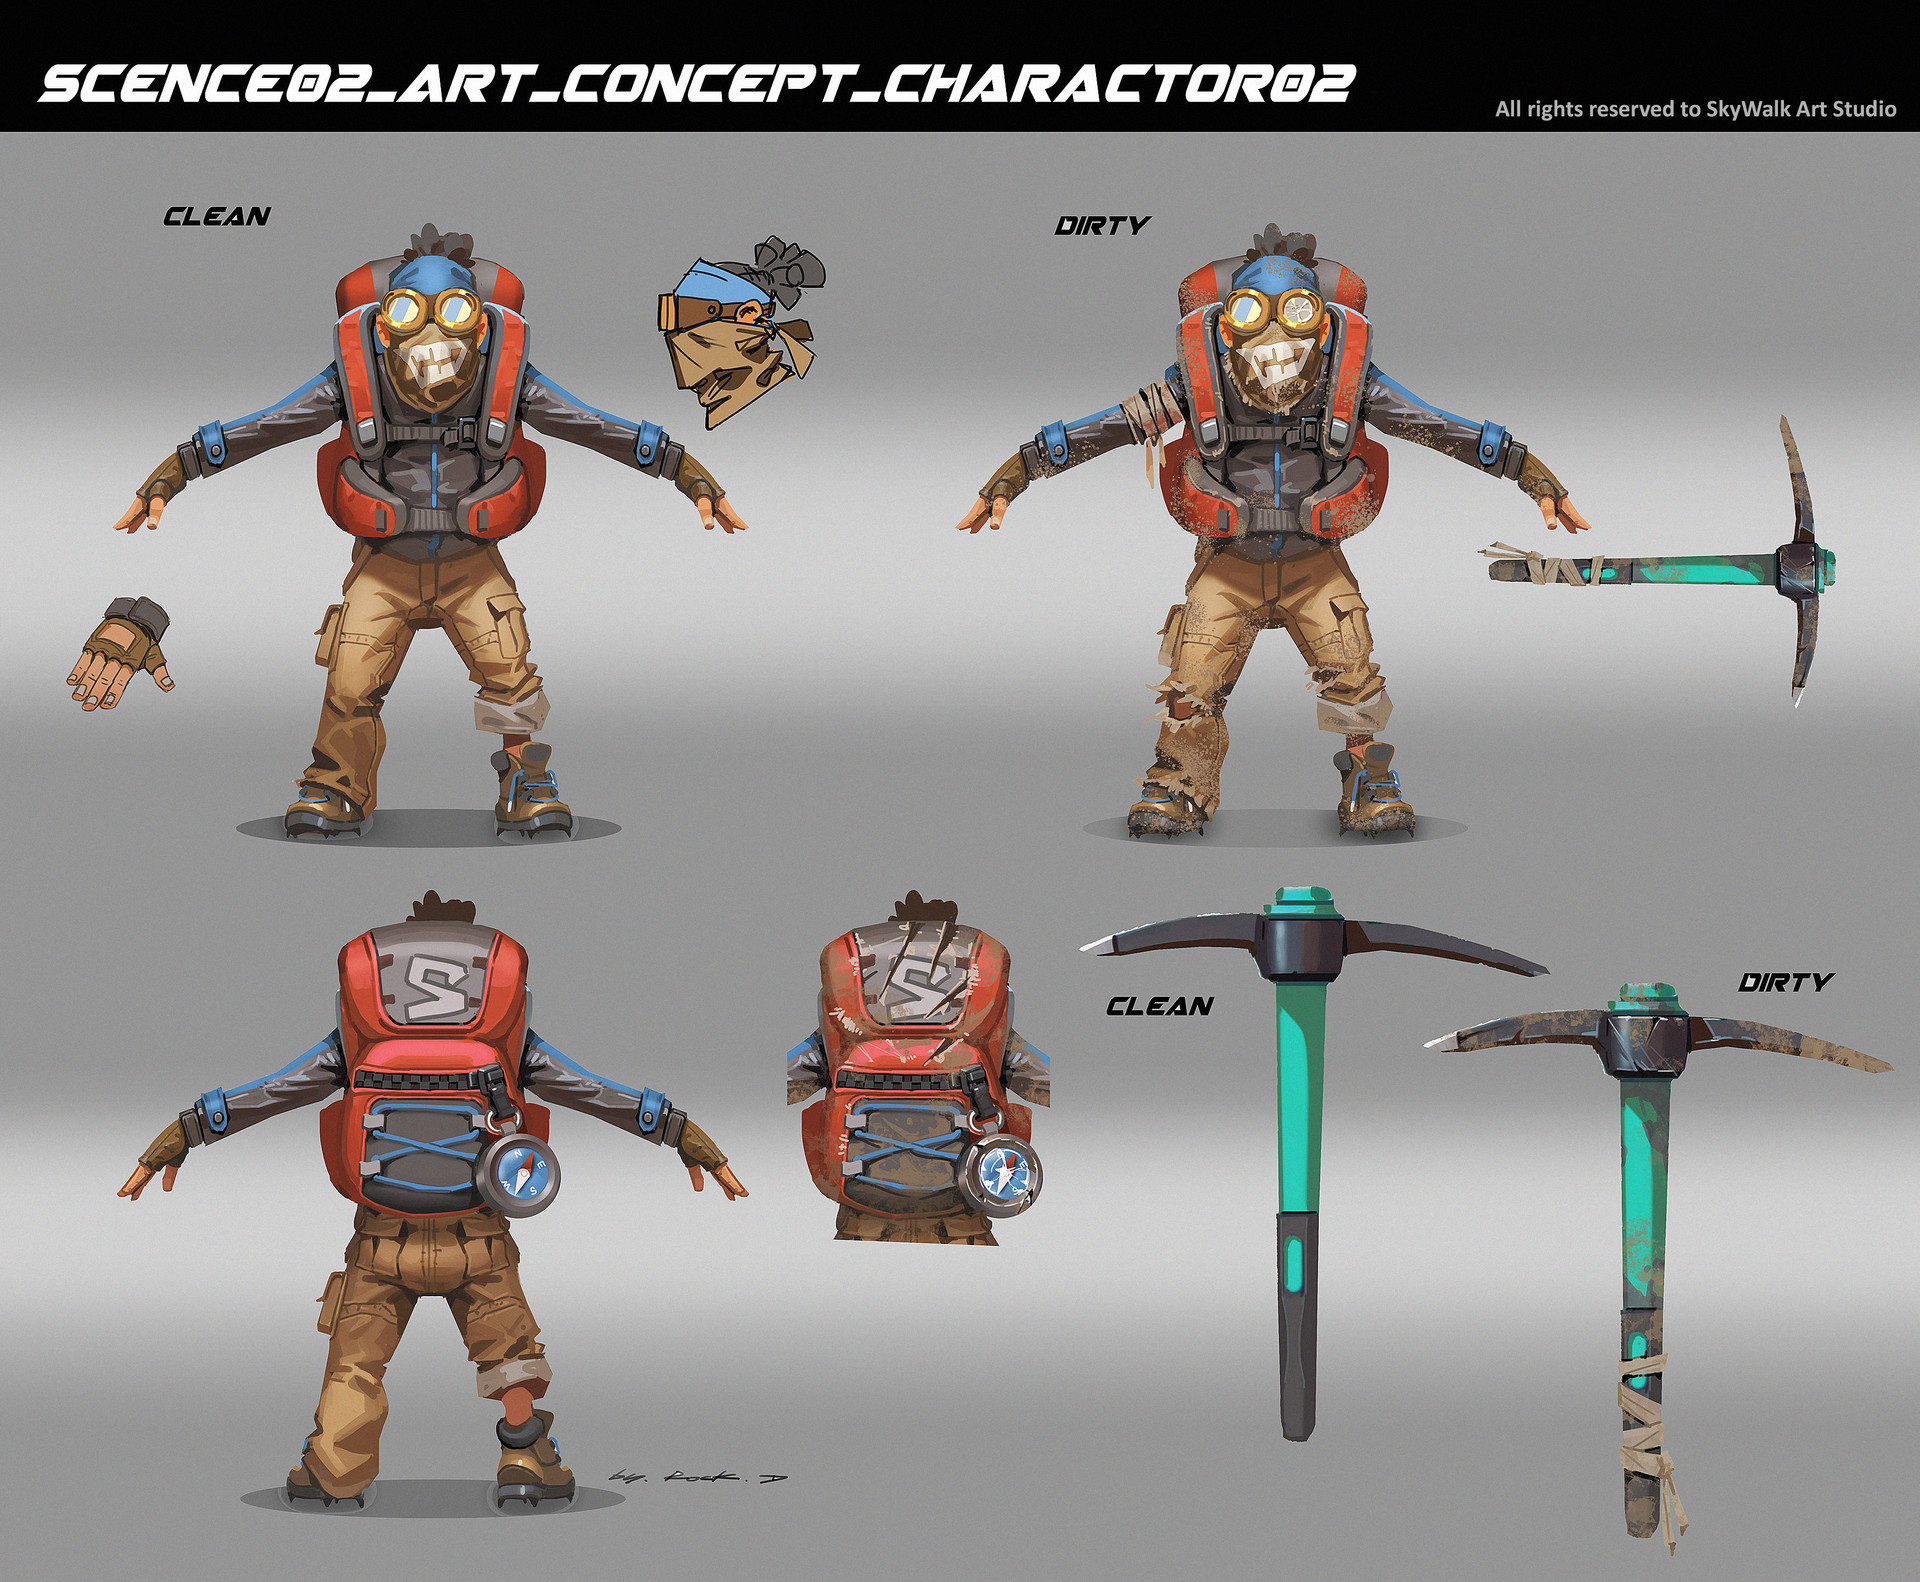 Rock d scence2 charactor02 concept